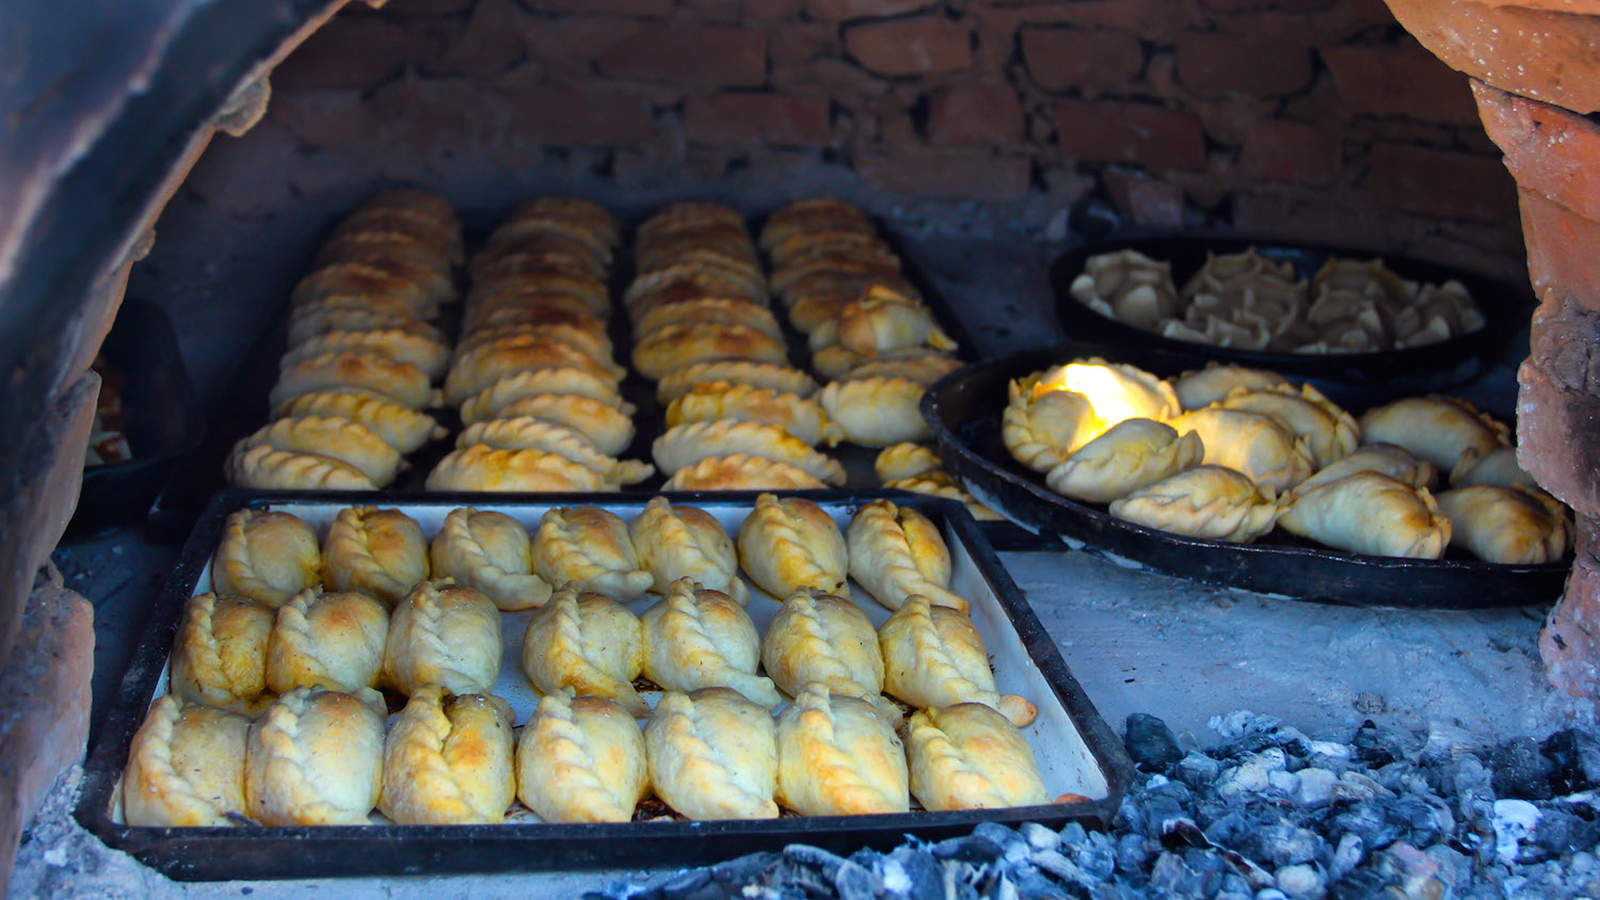 Cuisine Argentina 10 Foods To Eat In Argentina Cnn Travel